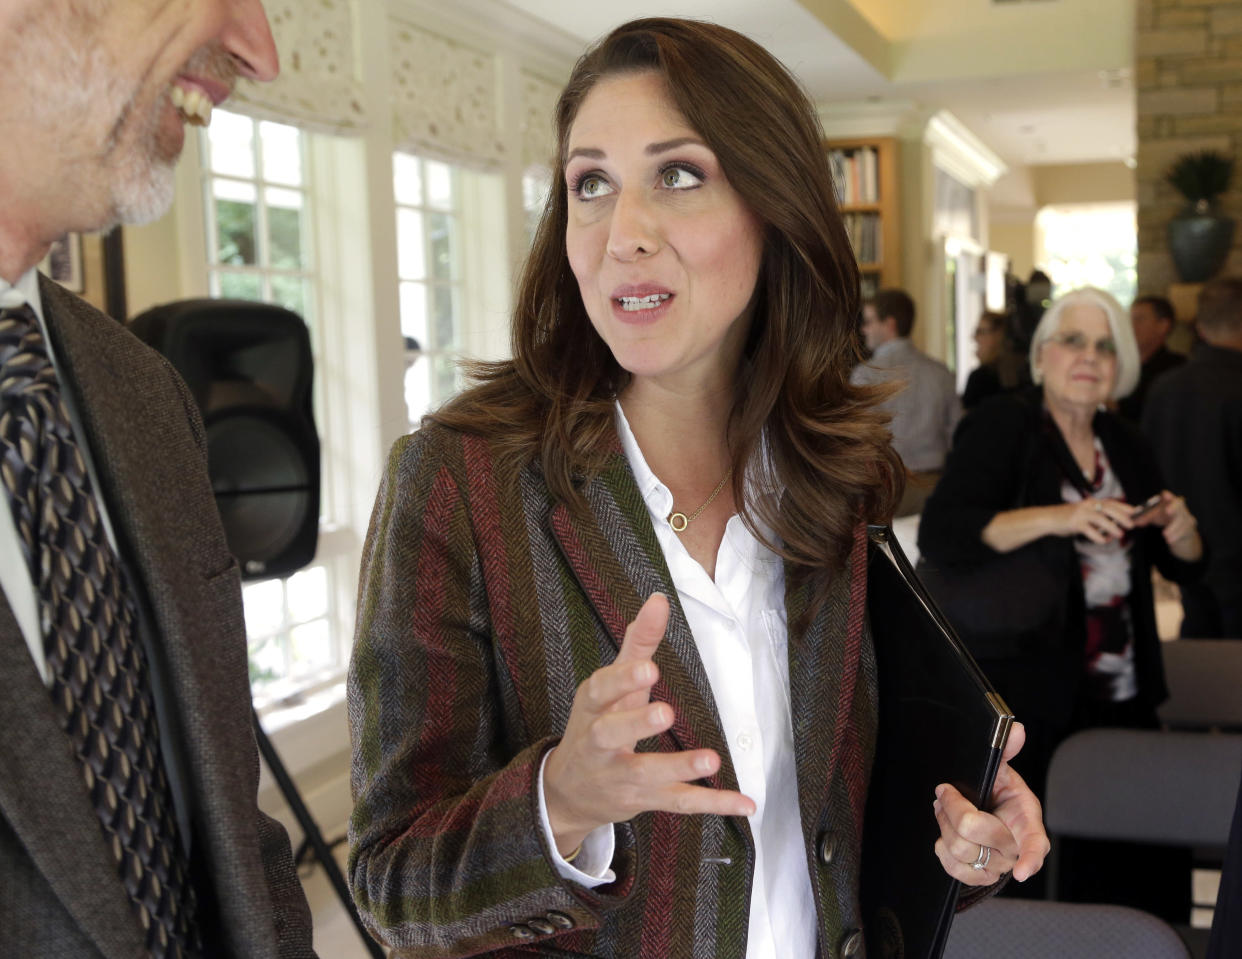 Republican U.S. Rep. Jaime Herrera Beutler, representing southwest Washington state's 3rd Congressional District, at a gathering in Vancouver, Wash., on Sept, 10, 2018. (Photo: Don Ryan/AP)